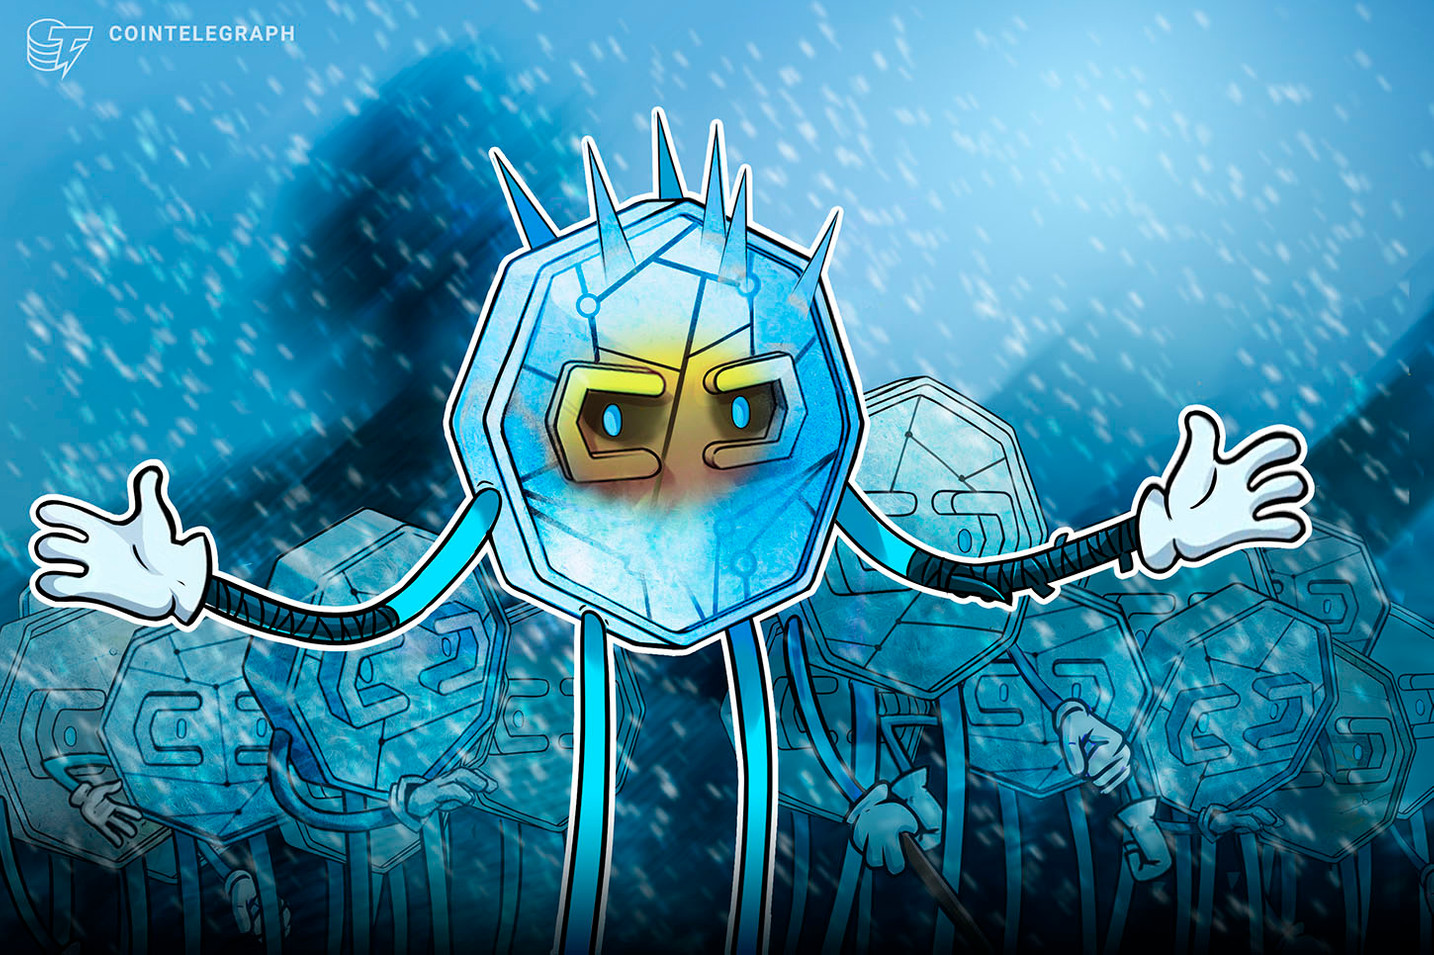 Bitcoin spring? Wyckoff 'groundhog' indicates crypto winter may last another 6 weeks